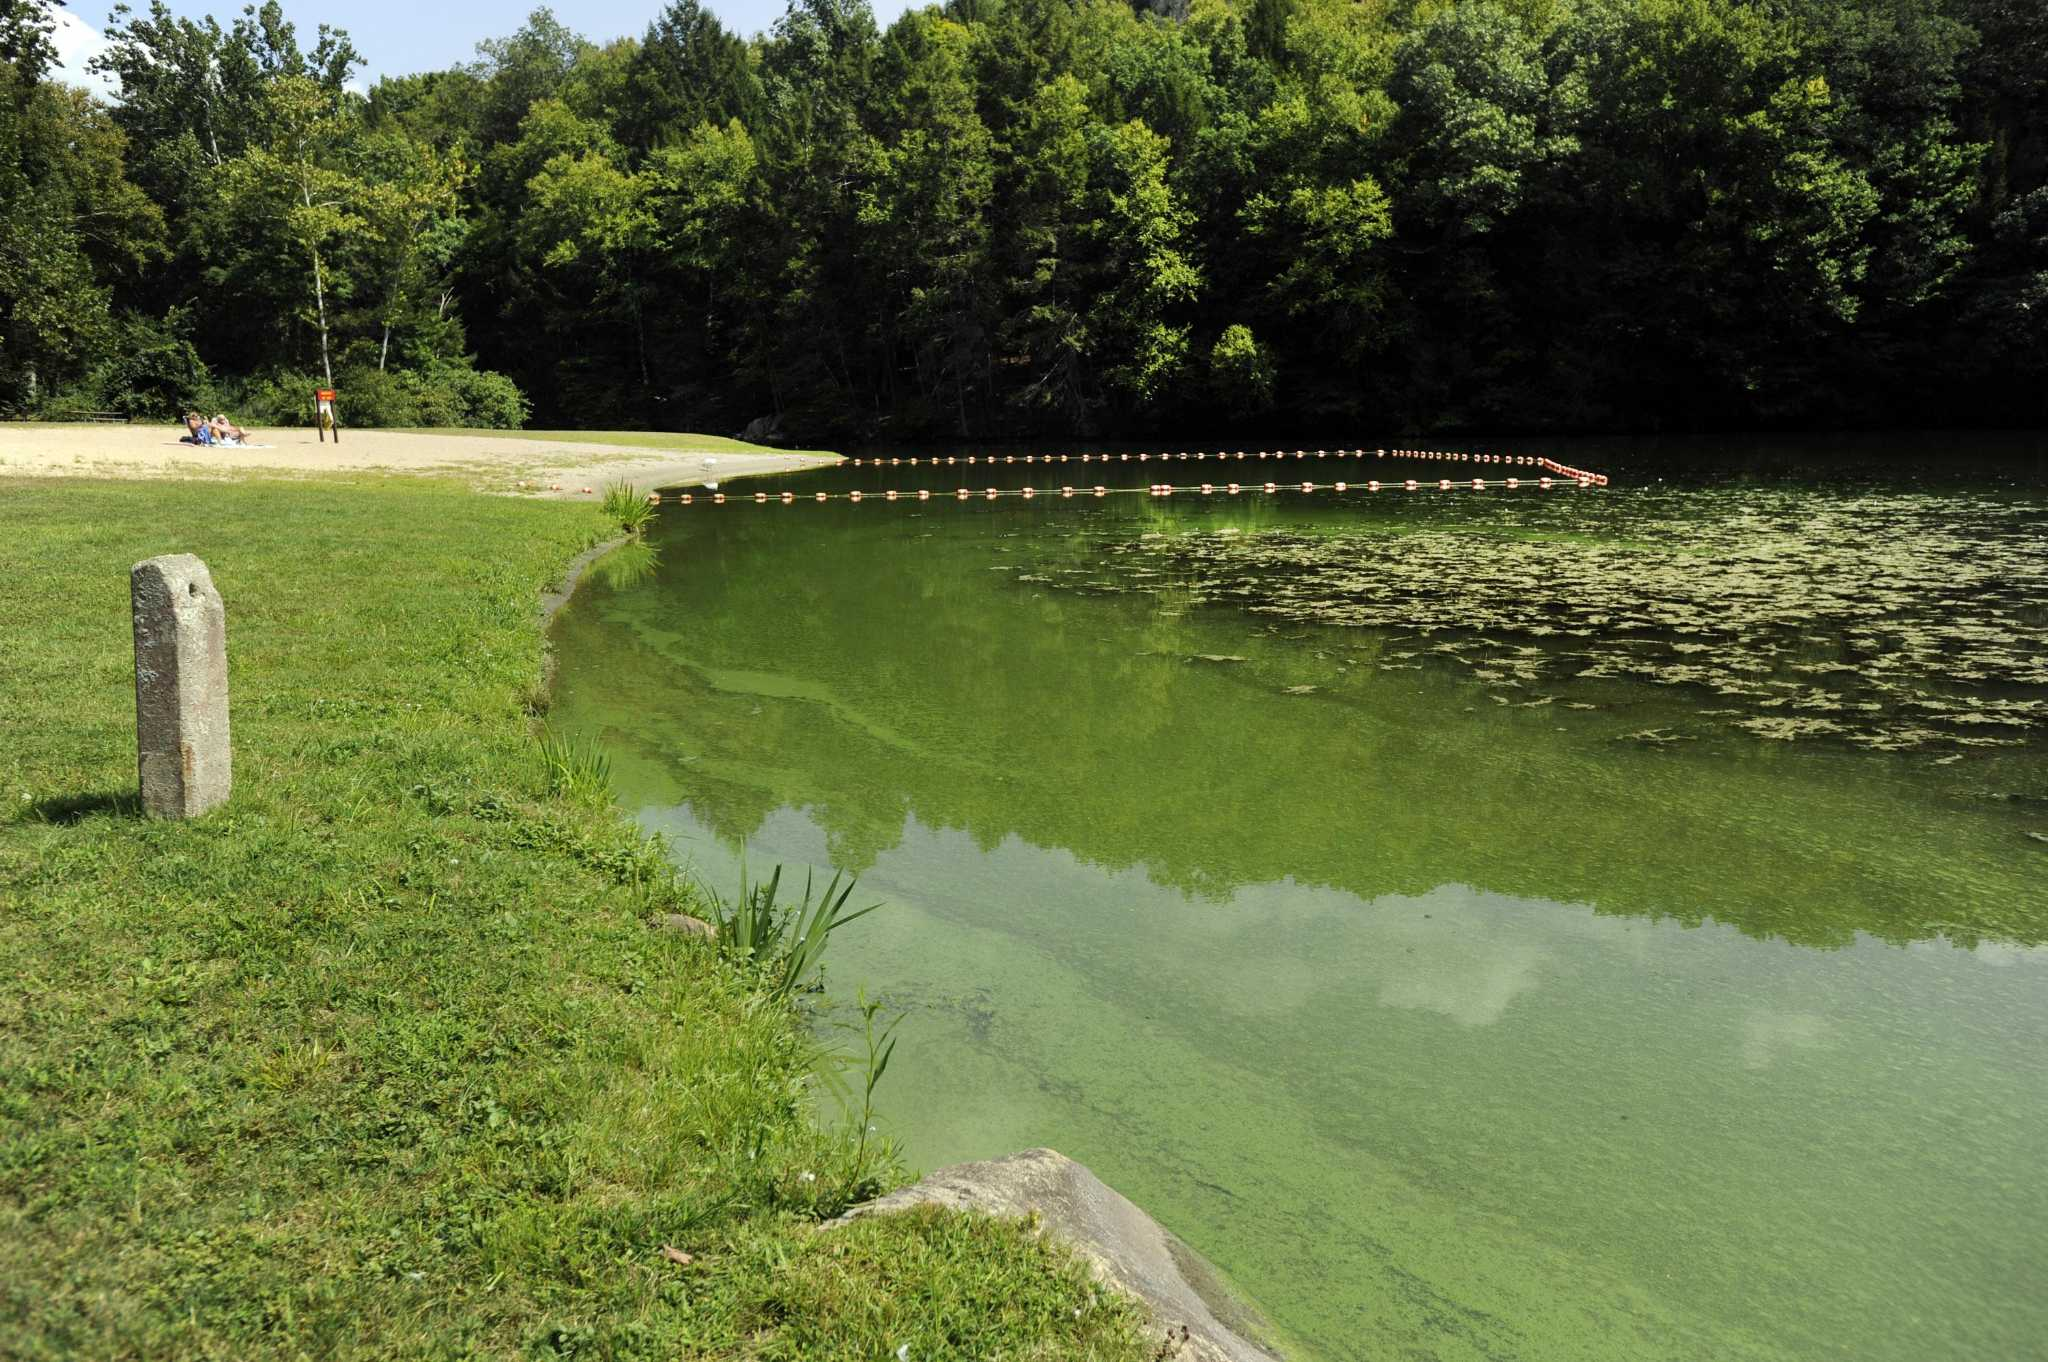 Swimmers Cautioned About Blue-green Algae Blooms